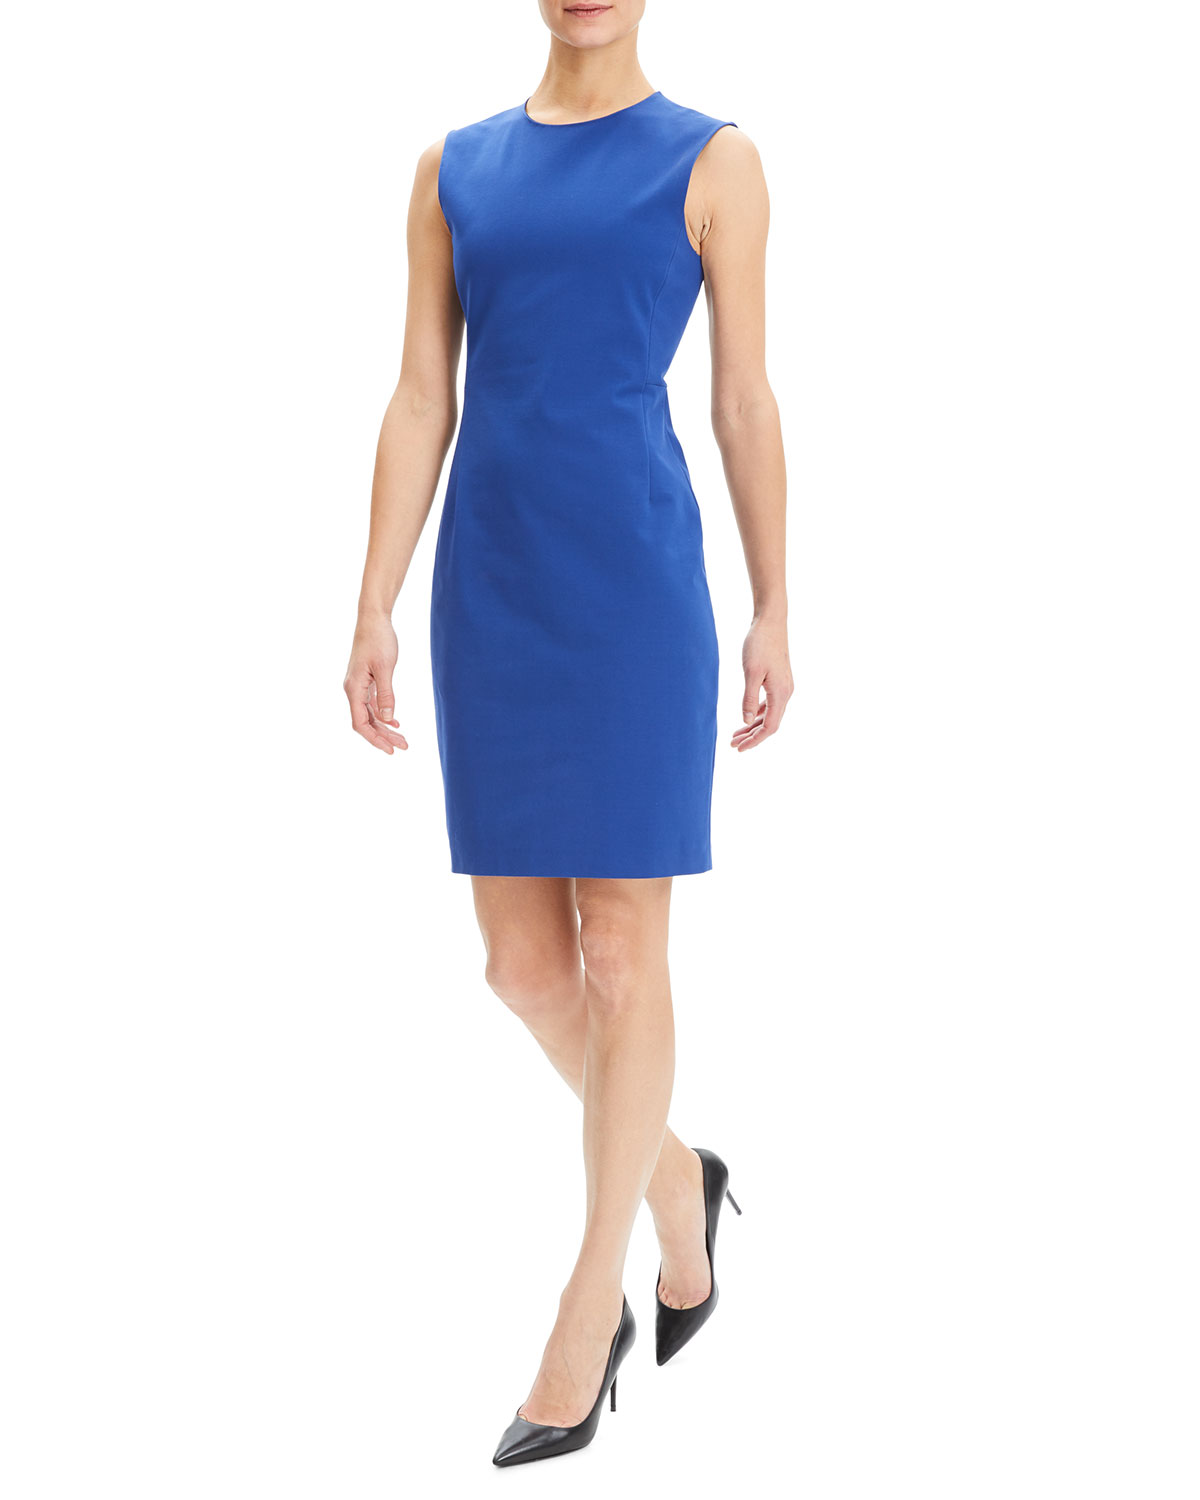 49e256d4e2 Theory Crewneck Sleeveless Fitted Double Stretch Dress   Neiman Marcus